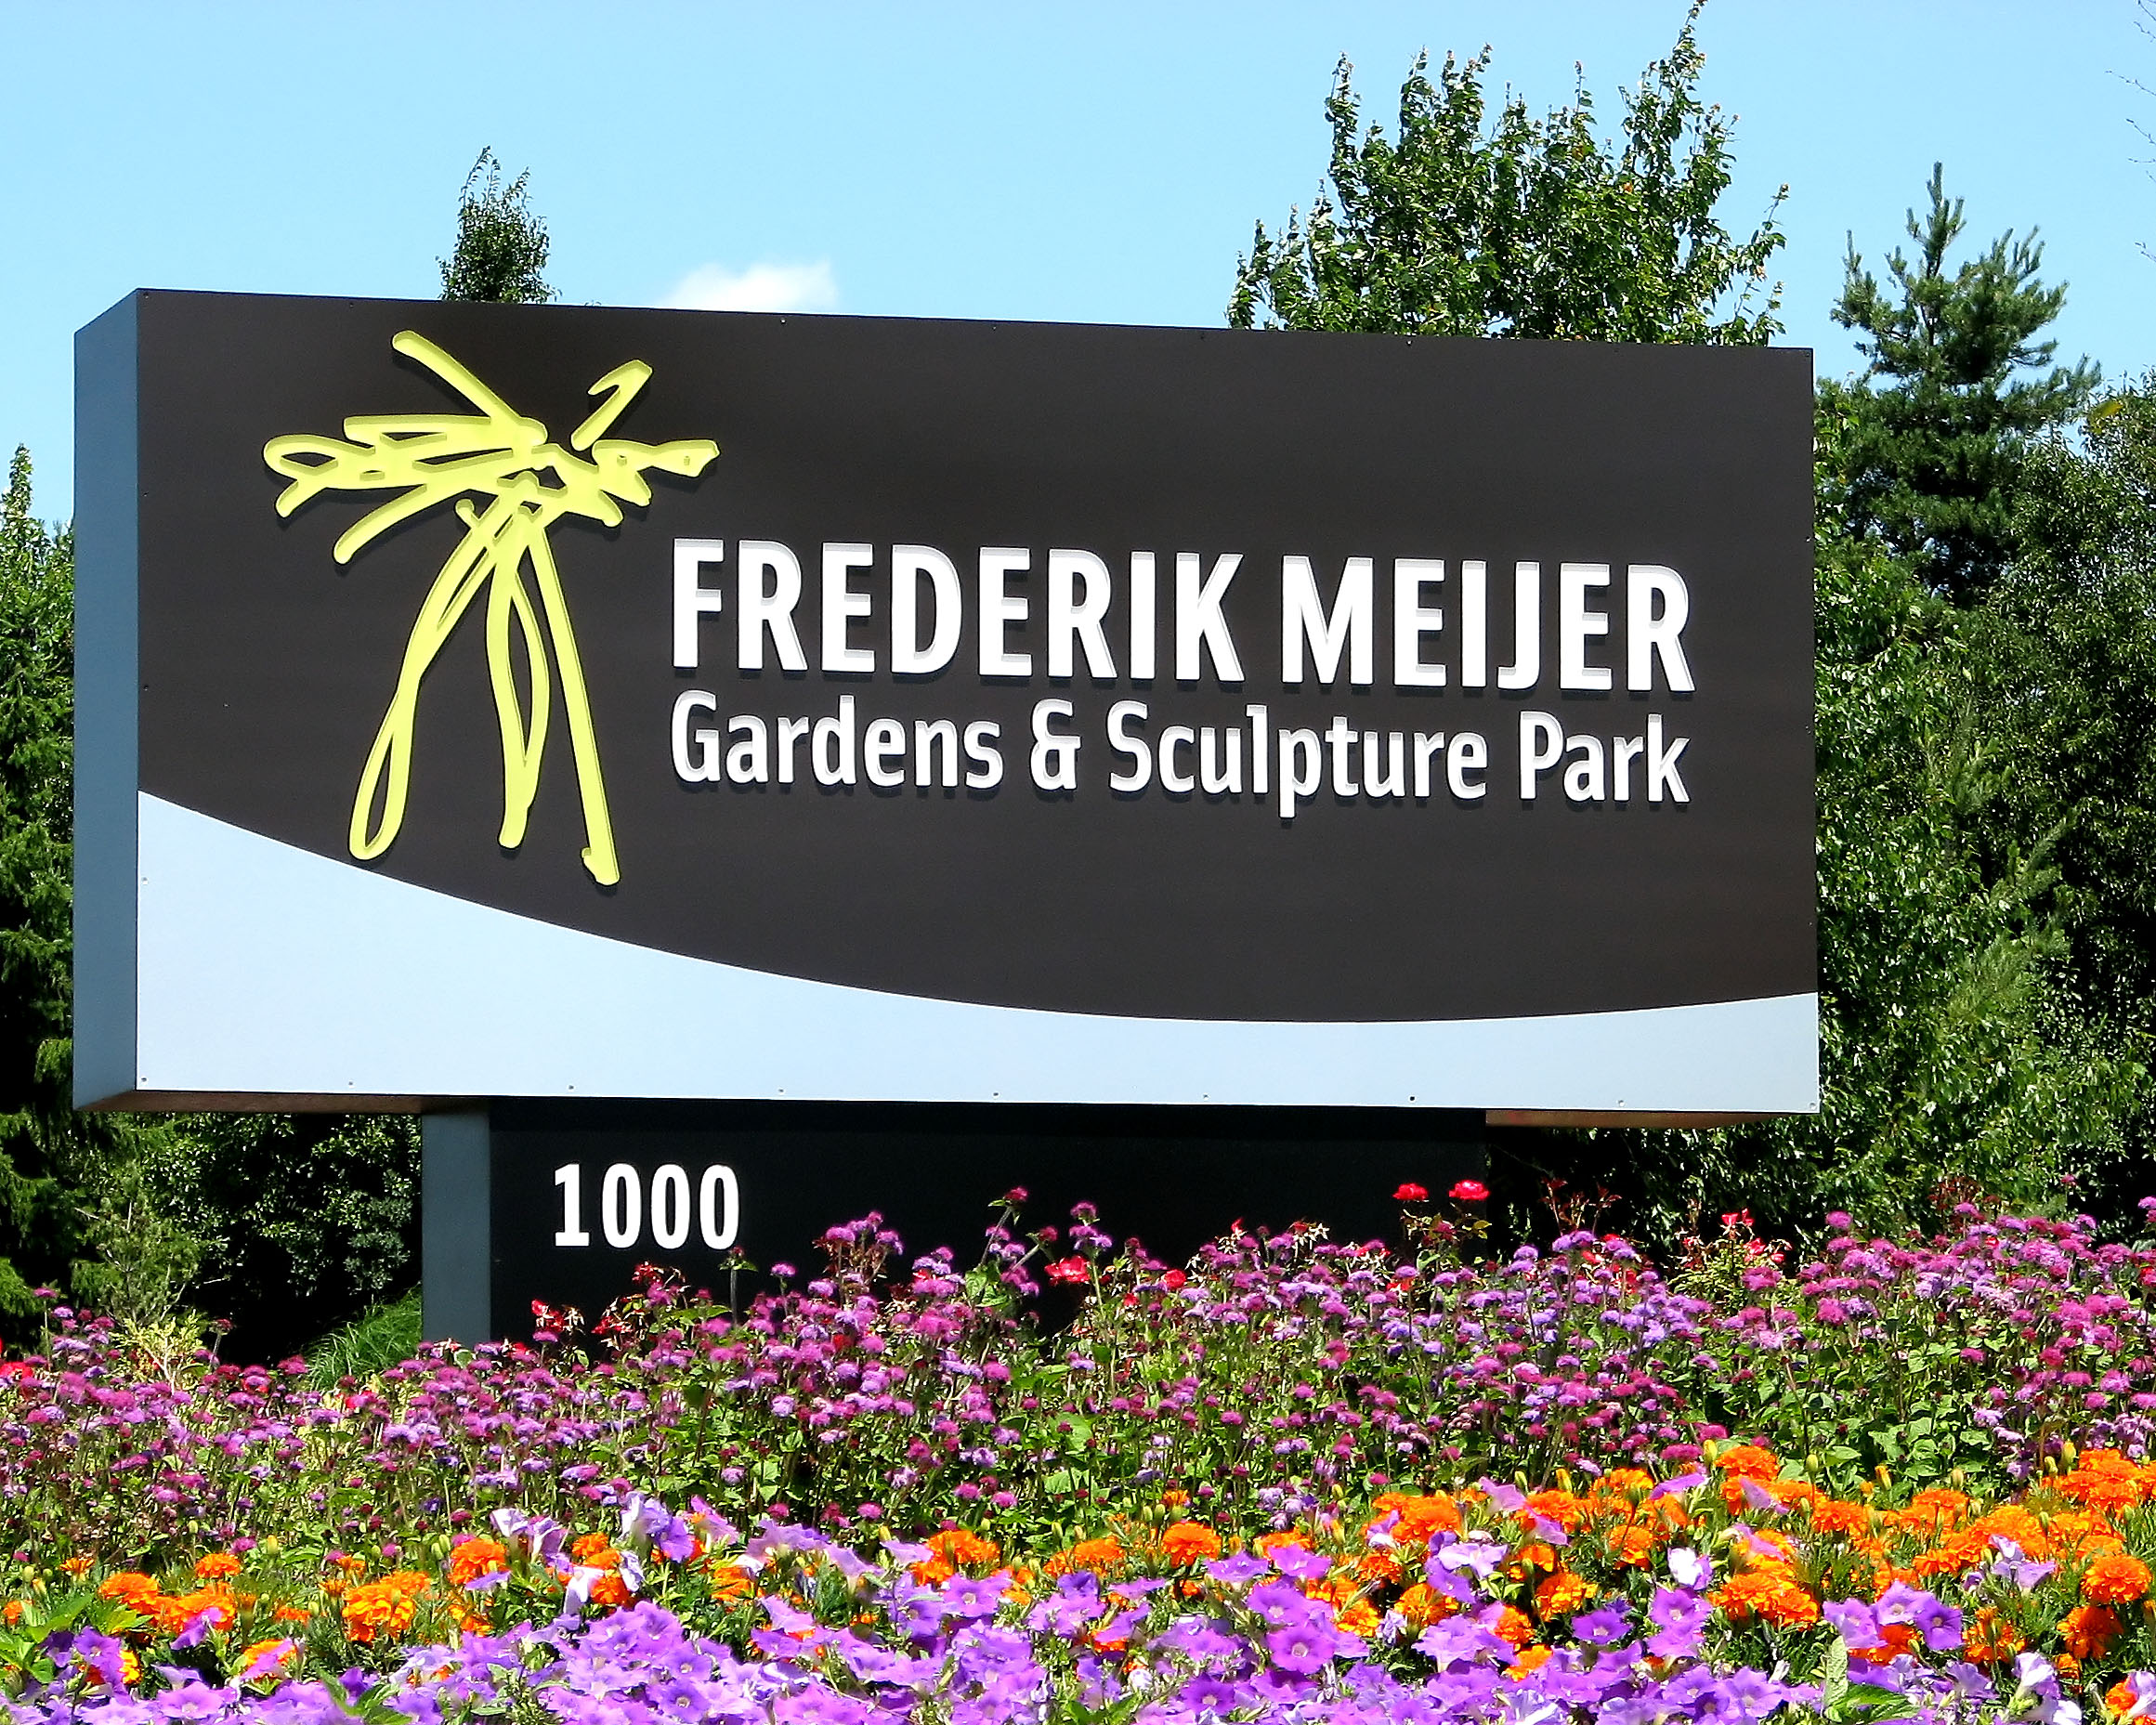 Meijer gardens sculpture park photography by rodney martin - Frederik meijer gardens and sculpture park ...